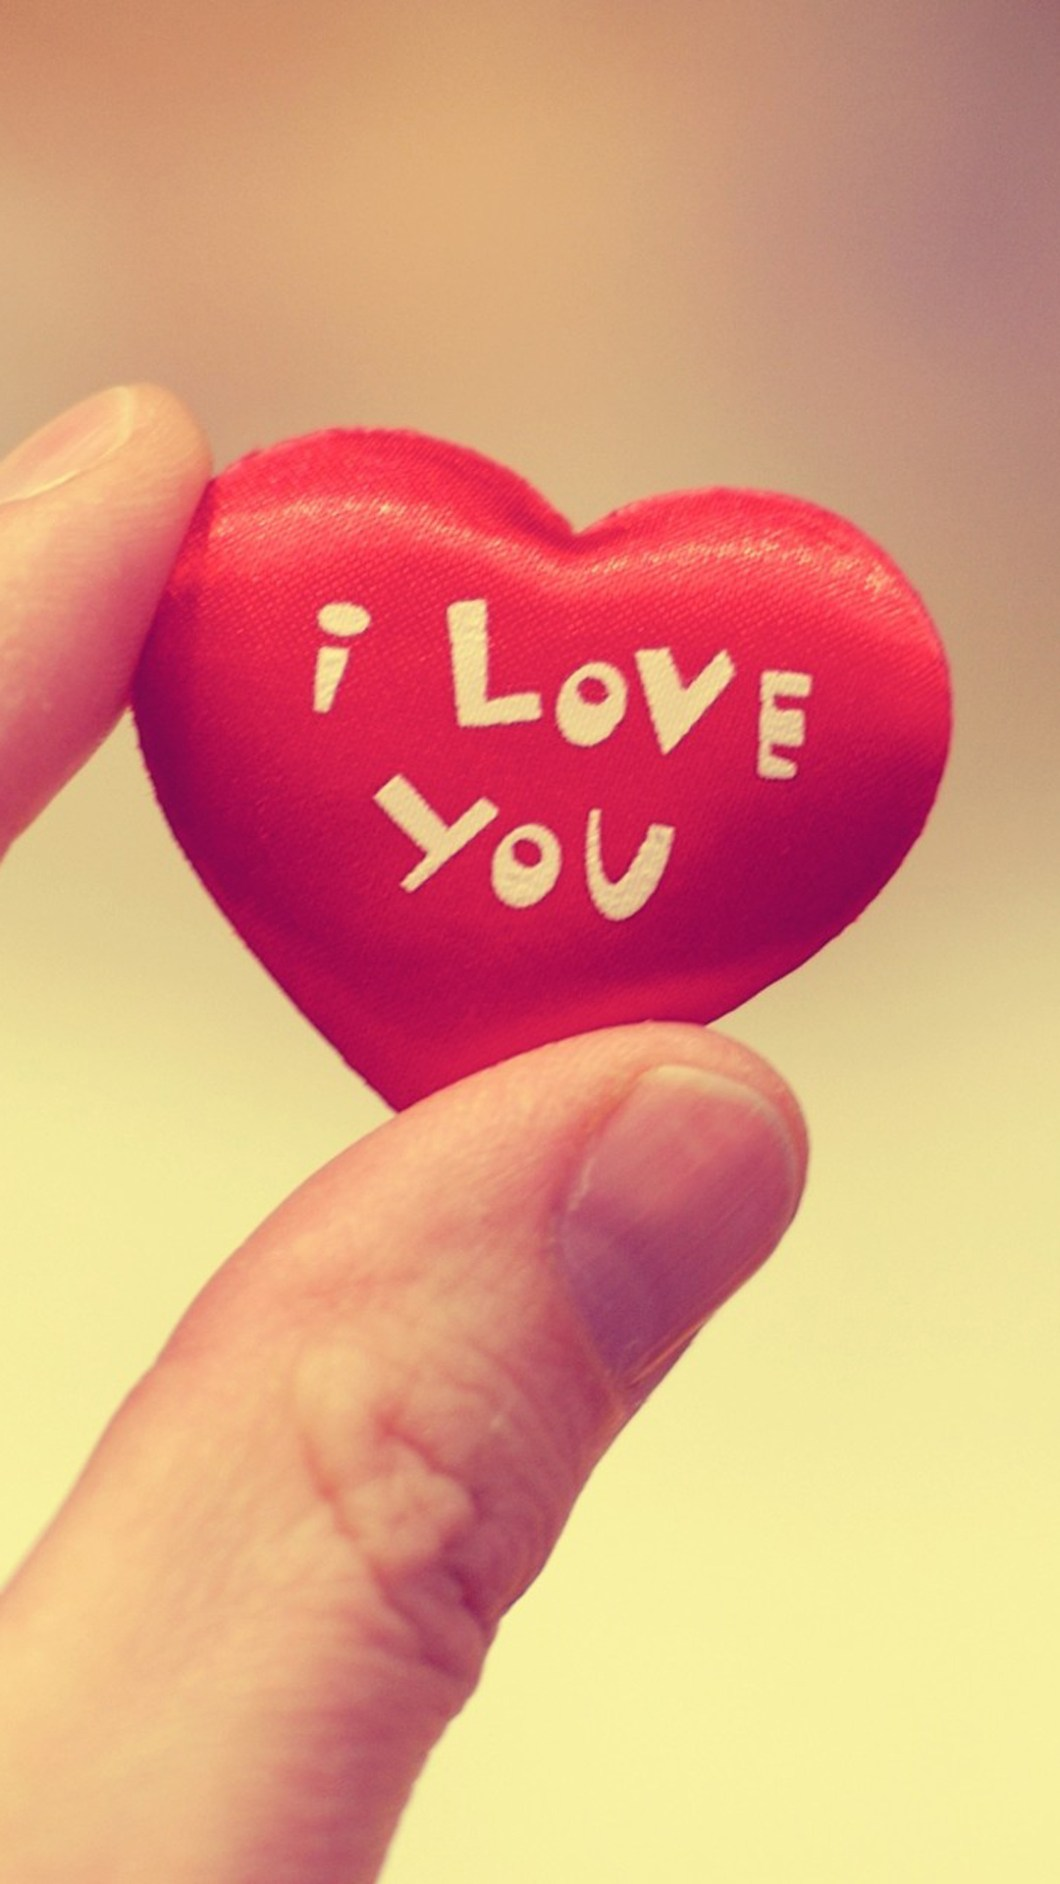 Cute I Love You Heart Mobile Wallpaper Phone Background